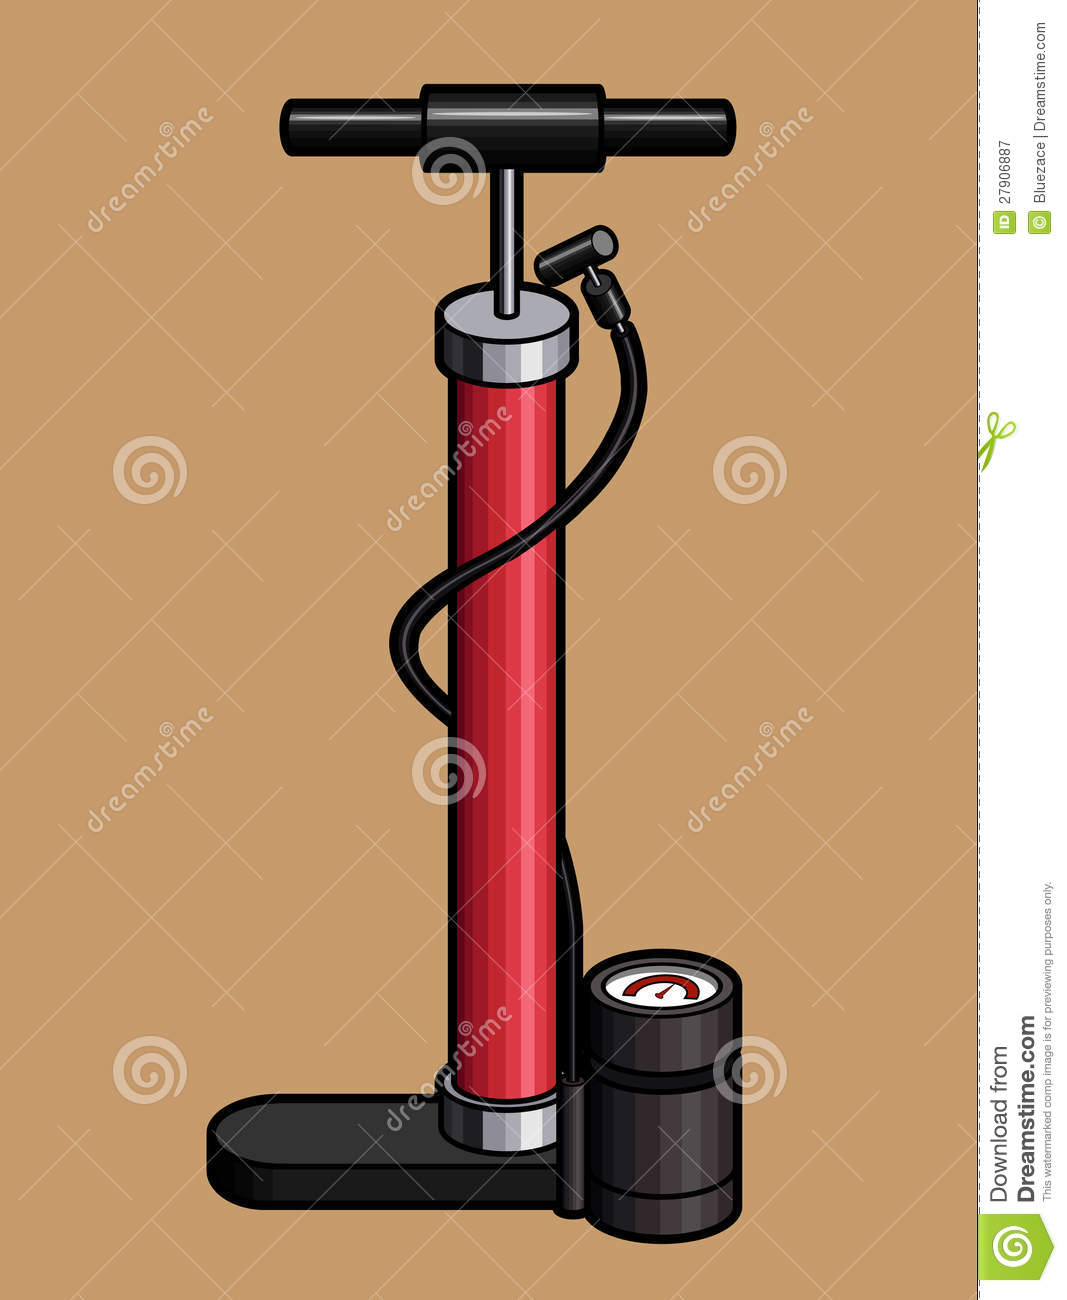 bicycle hand pump instructions